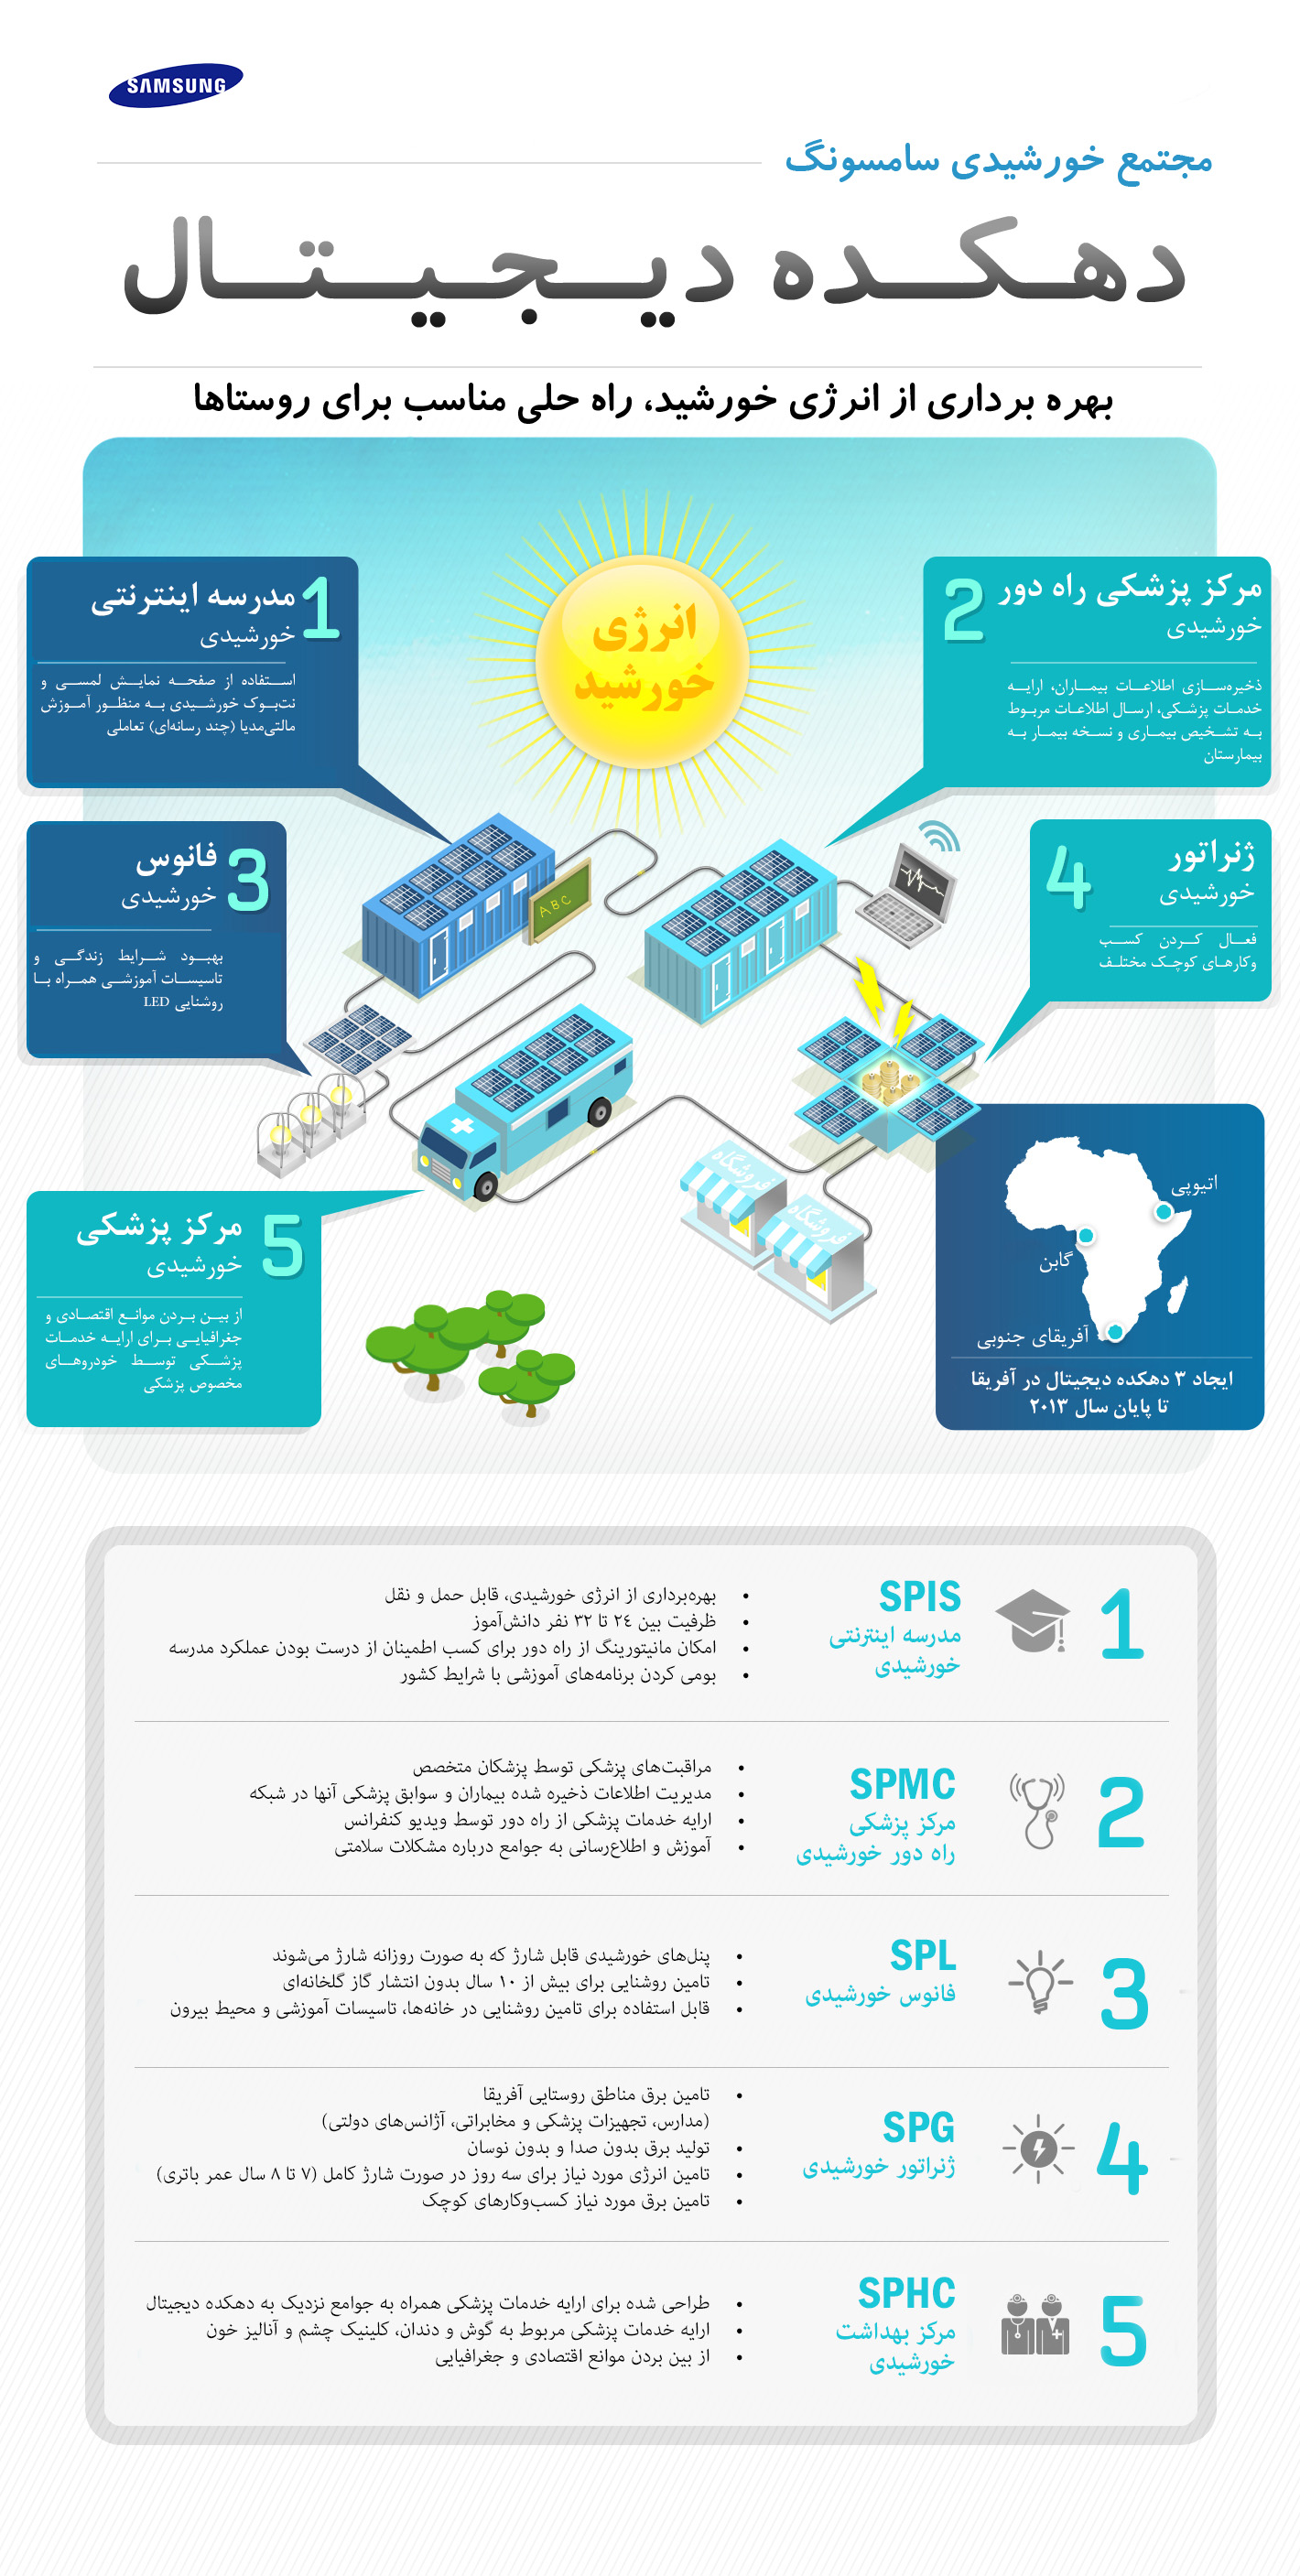 [Infographic] Digital Village - Farsi